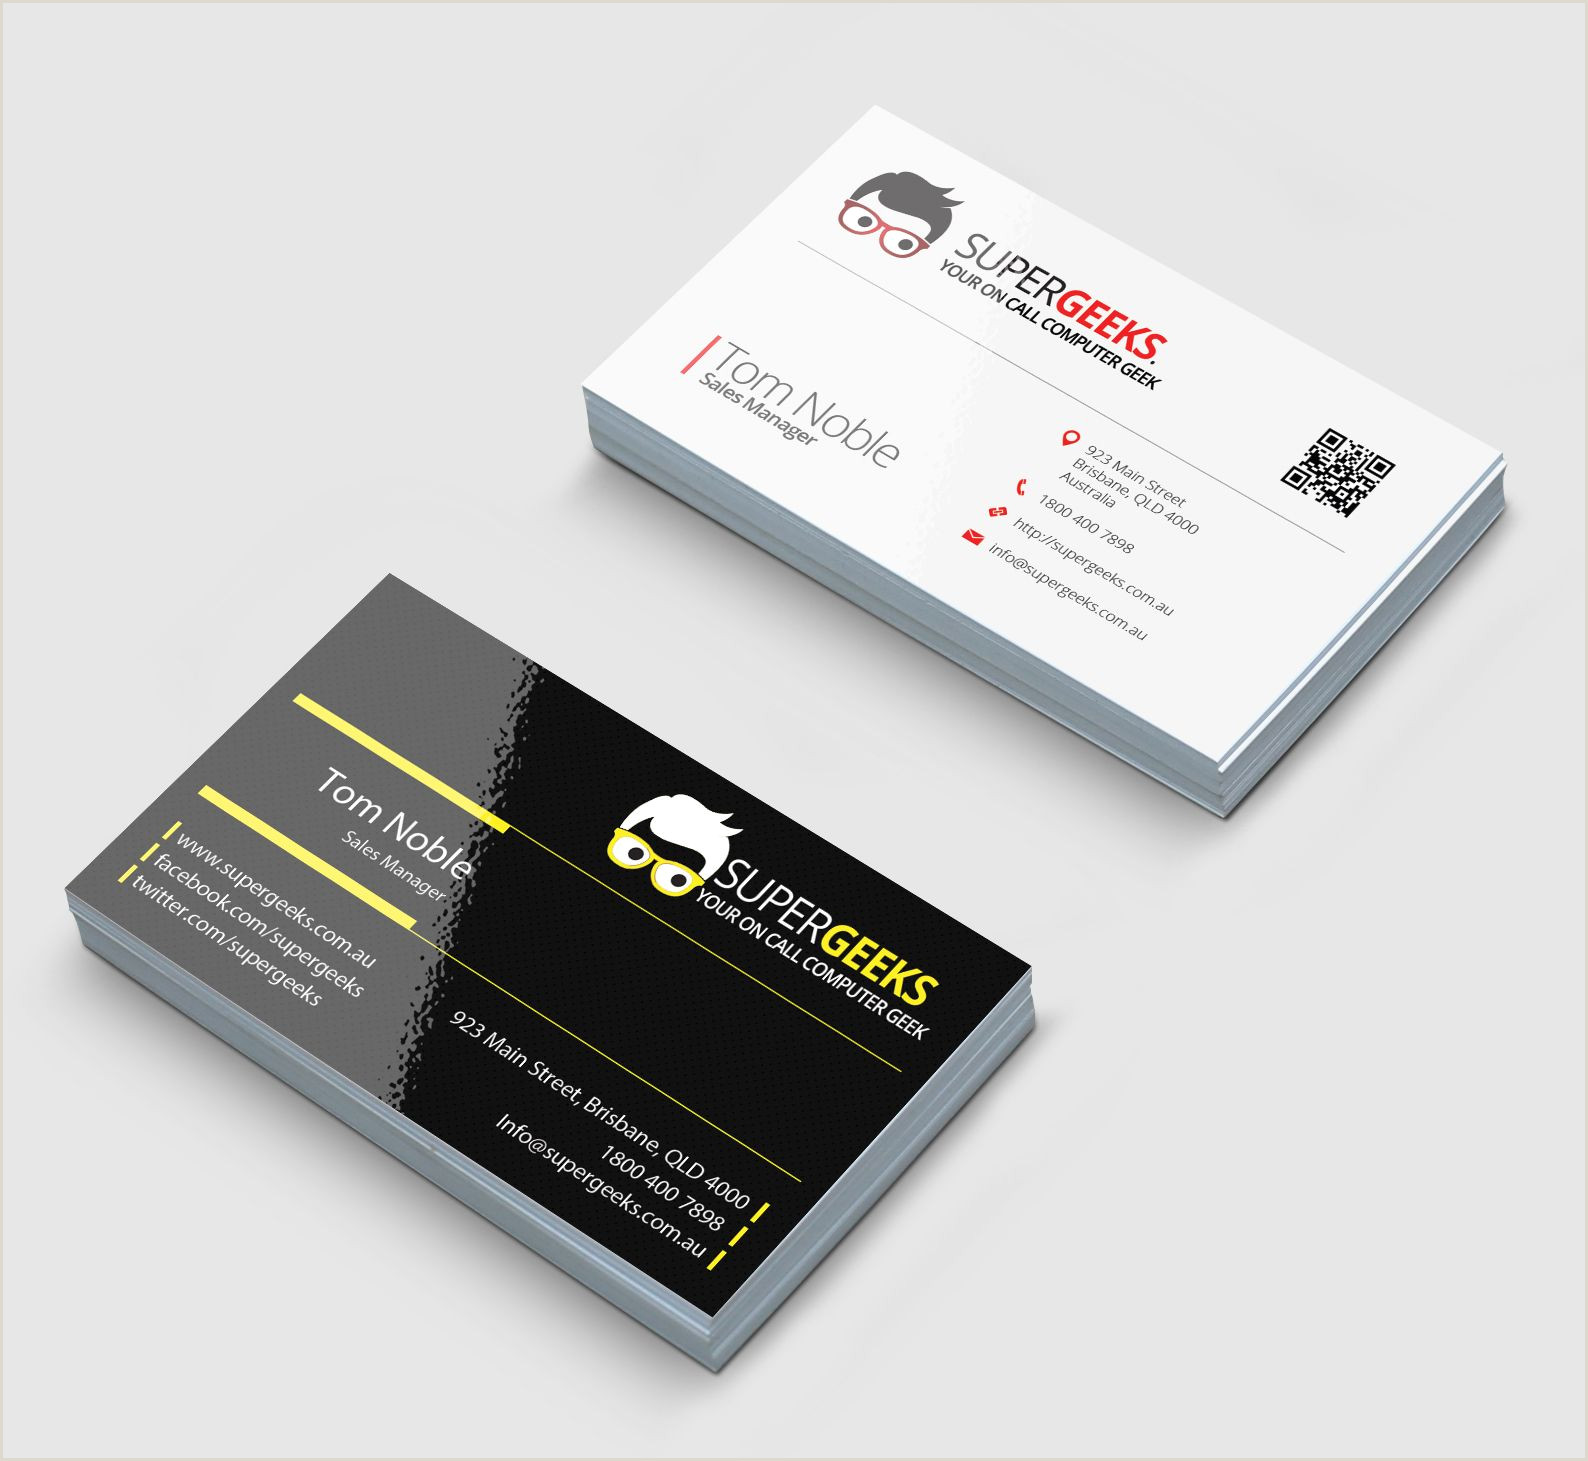 Cheap Personalized Business Cards Single Sided Business Card Samples For Sale